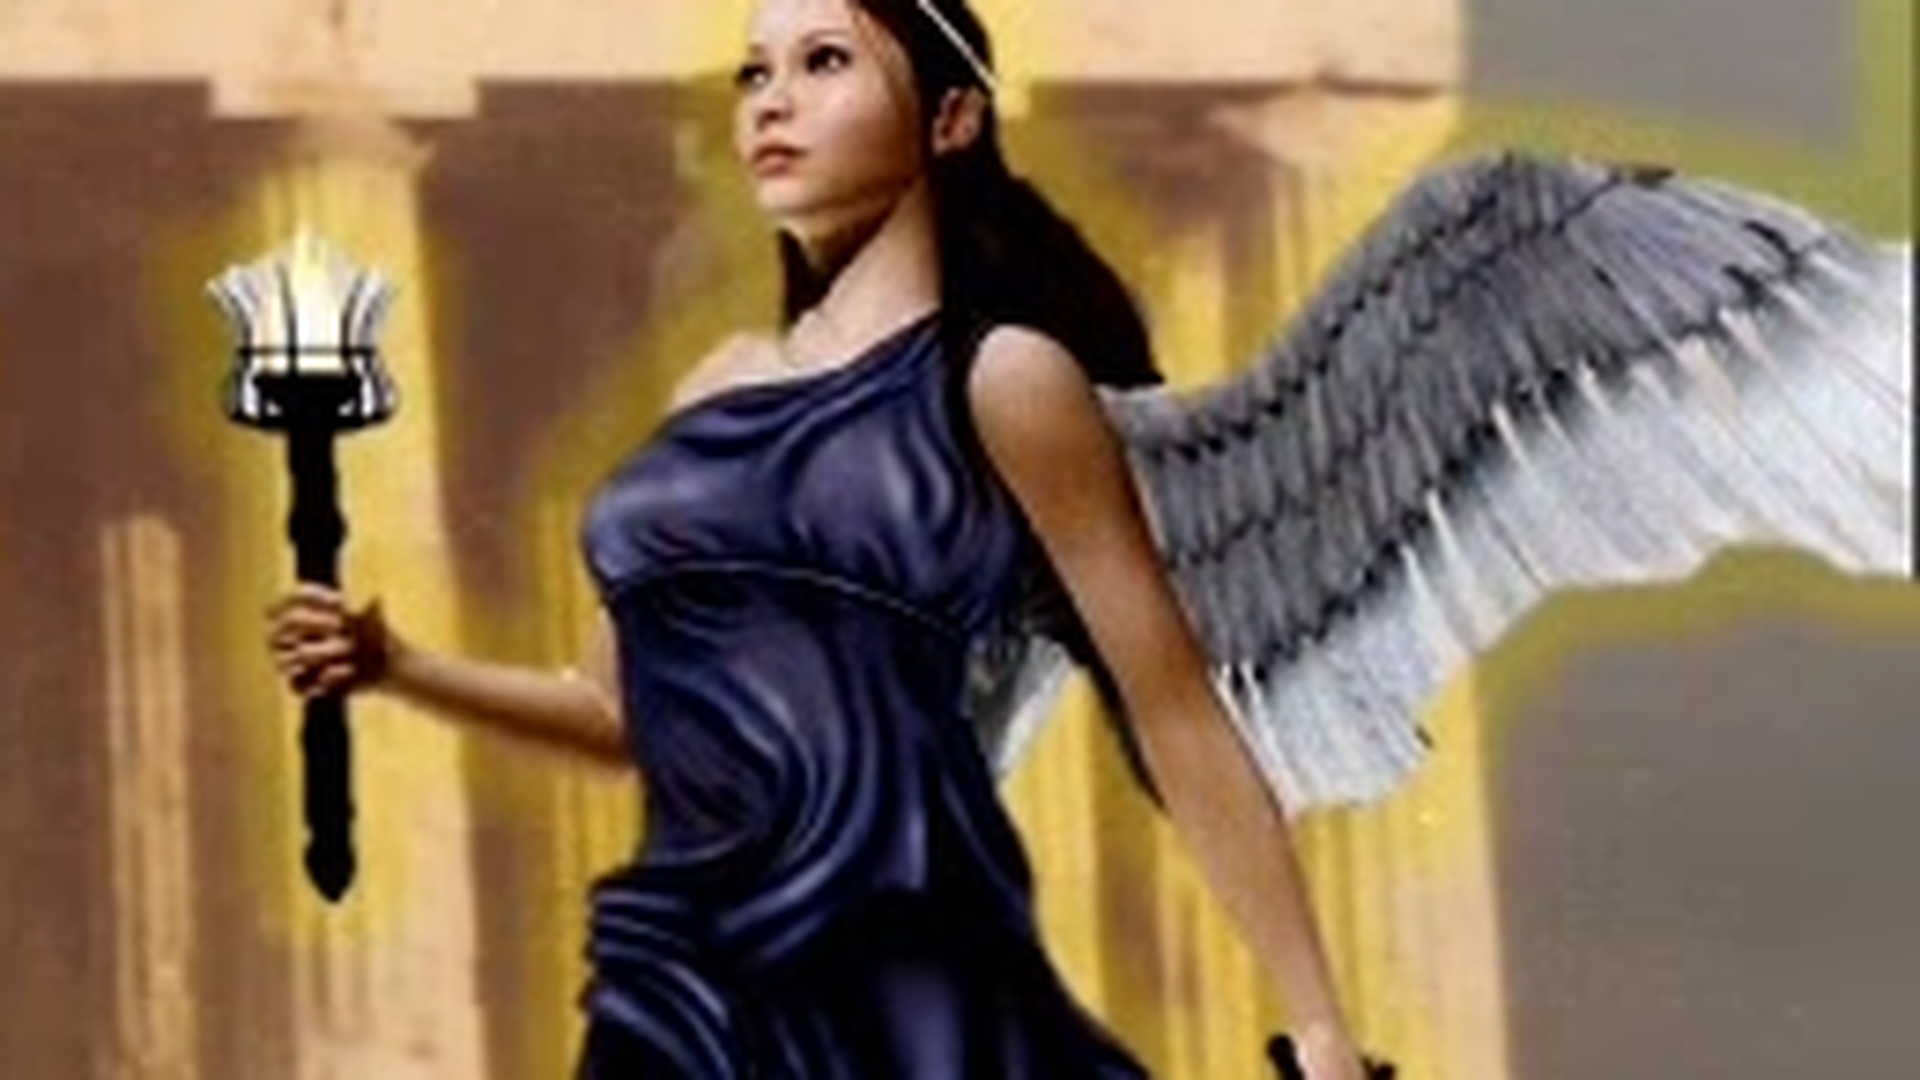 Howstuffworks: Can We Guess the Ancient Greek Goddess That